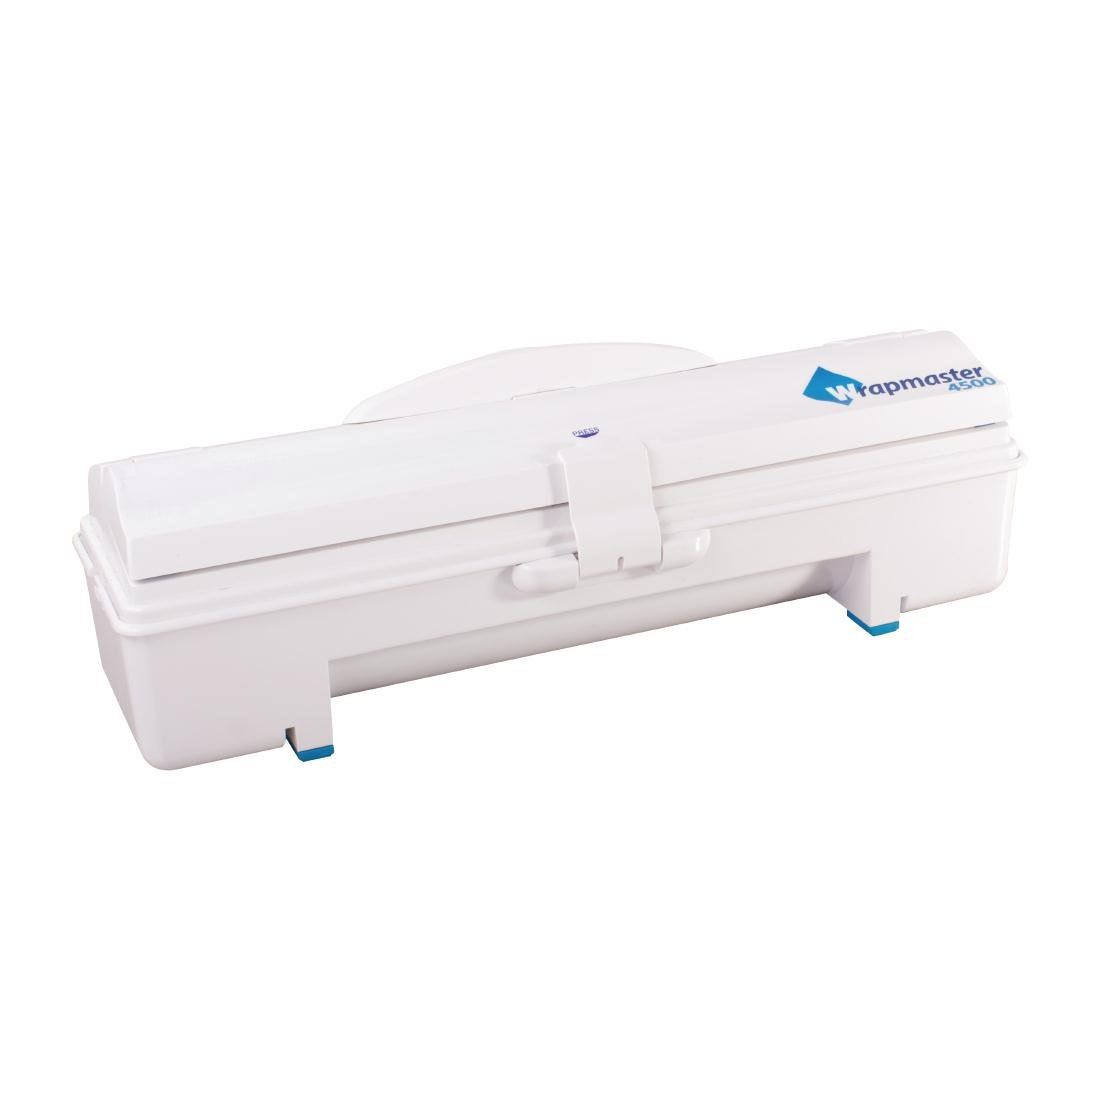 Details about Wrapmaster 4500 Cling Foil Film Dispenser with Non Slip Feet  & Lockable Lid 18in